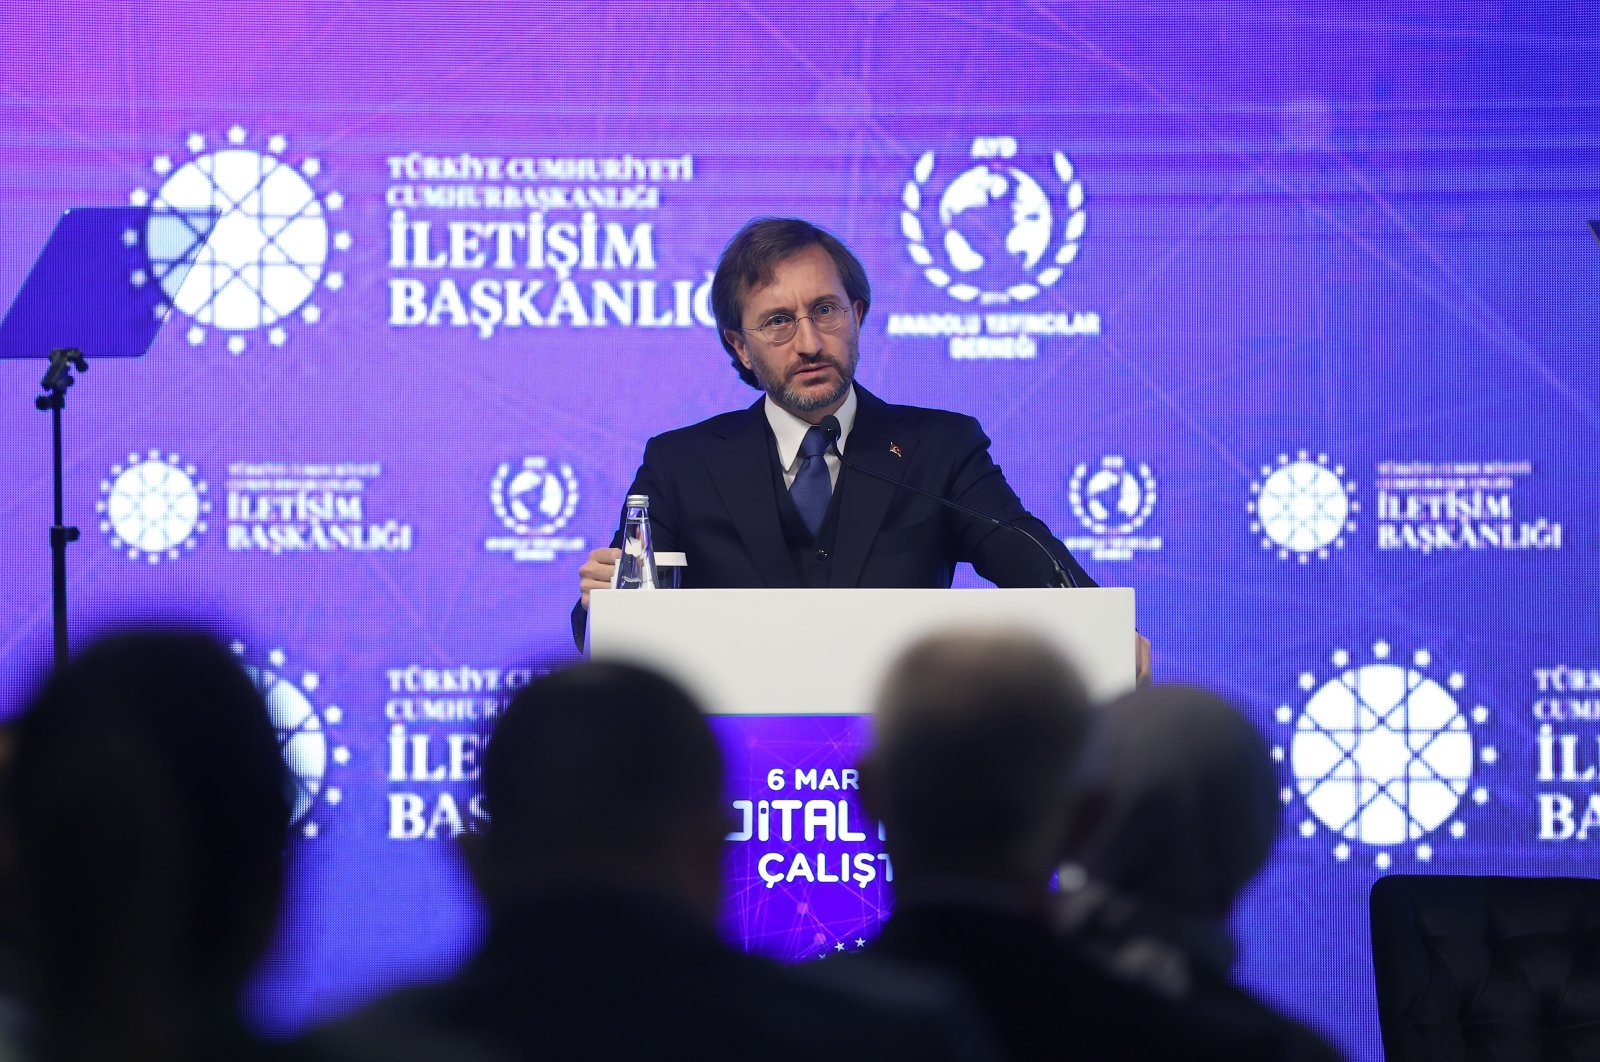 Presidential Communications Director Fahrettin Altun speaks at the Digital World Workshop in Istanbul on Saturday, March 6, 2021 (AA Photo)